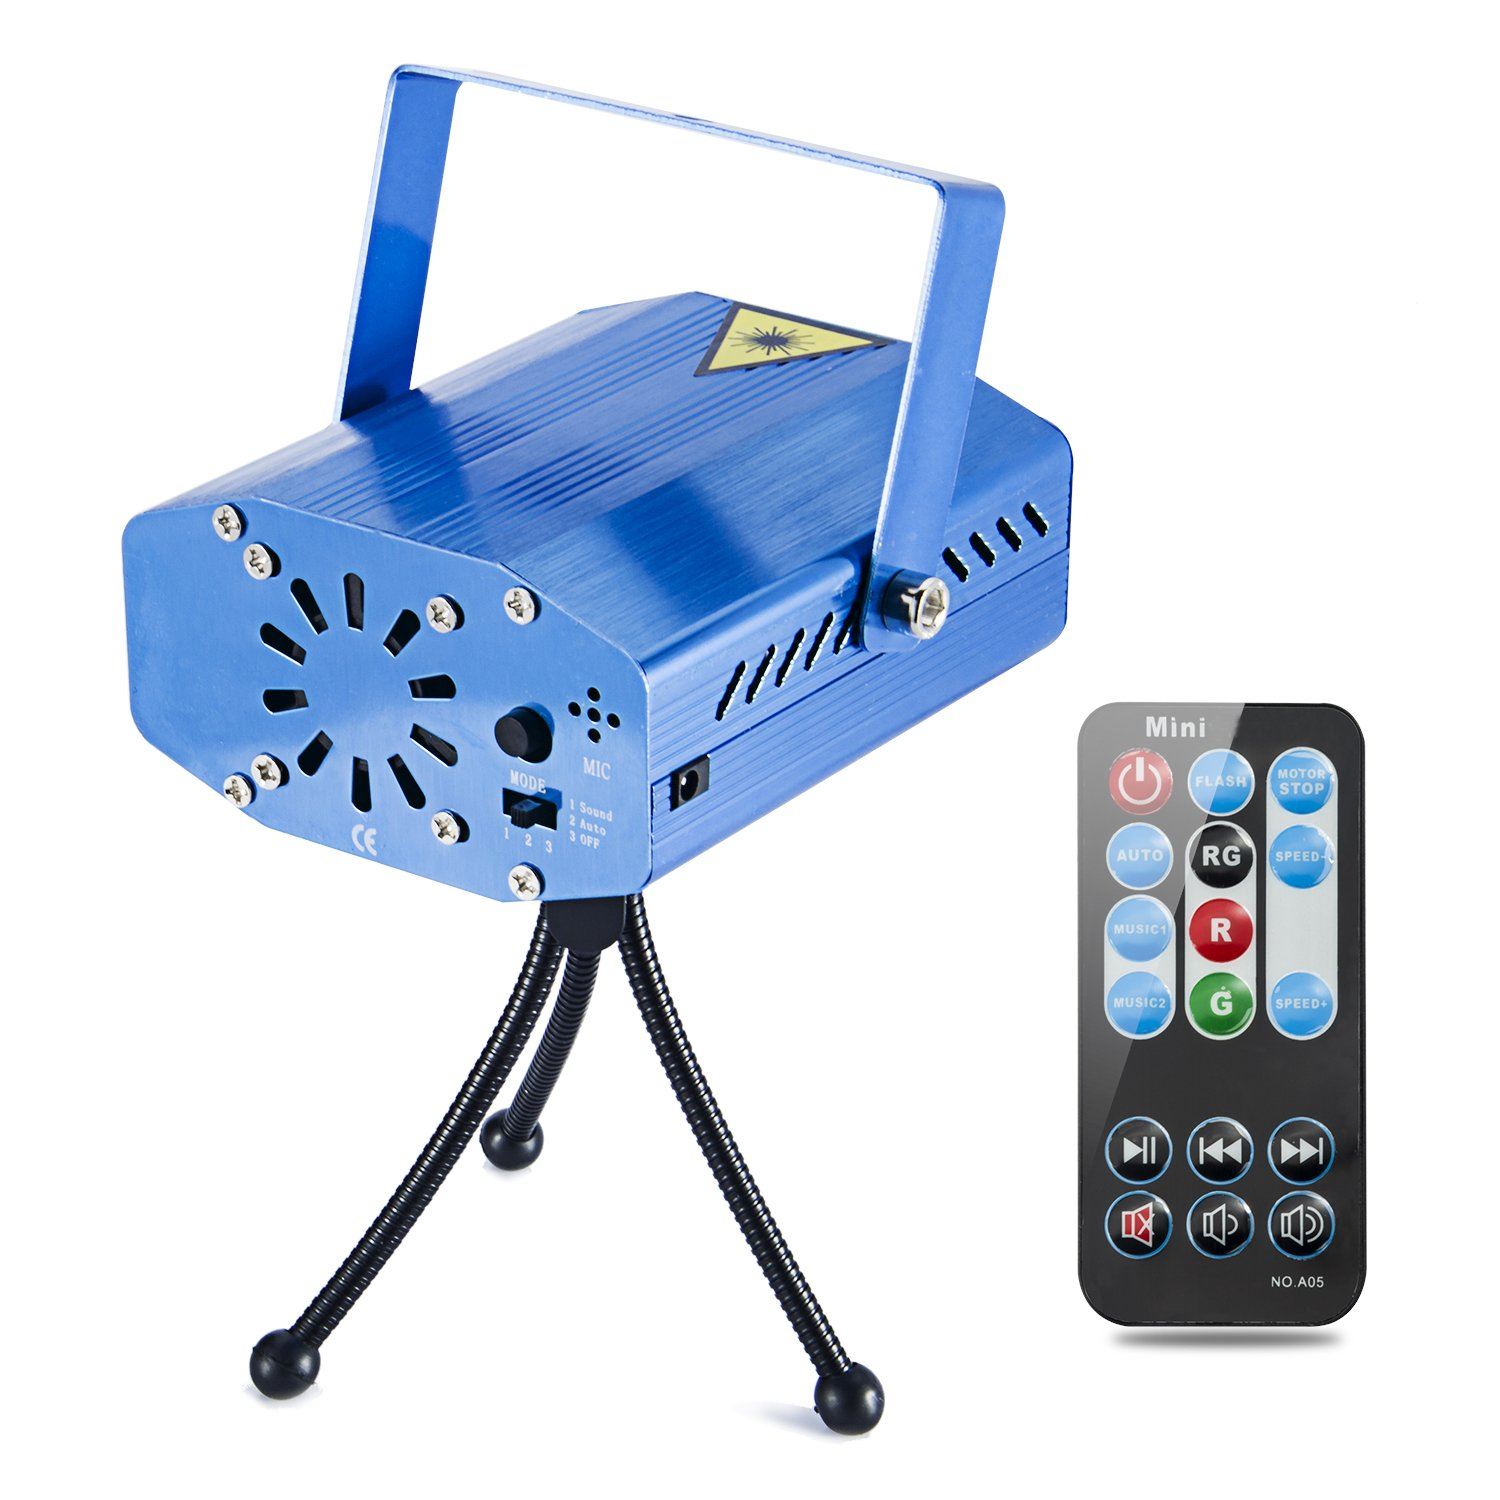 Coidea MIni LED Strobe 7 Modes Sound Actived Auto Flash Rgb Led Stage,Disco, DJ Lights with Remote Control (Blue) COIDEA-LIGHT-7M-B